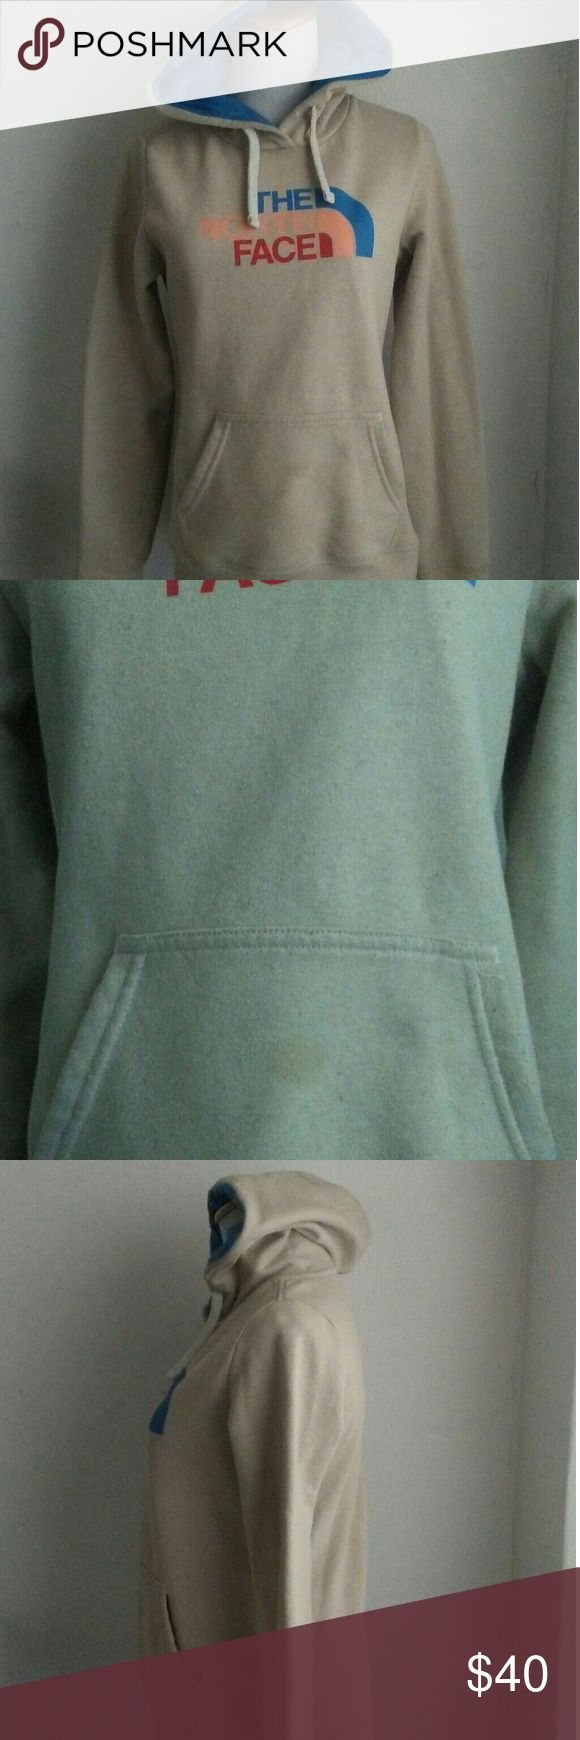 North Face women's Hoodie North Face khaki/  beige Hoodie Been worn a few times / does has a small stain on the front Tops Sweatshirts & Hoodies